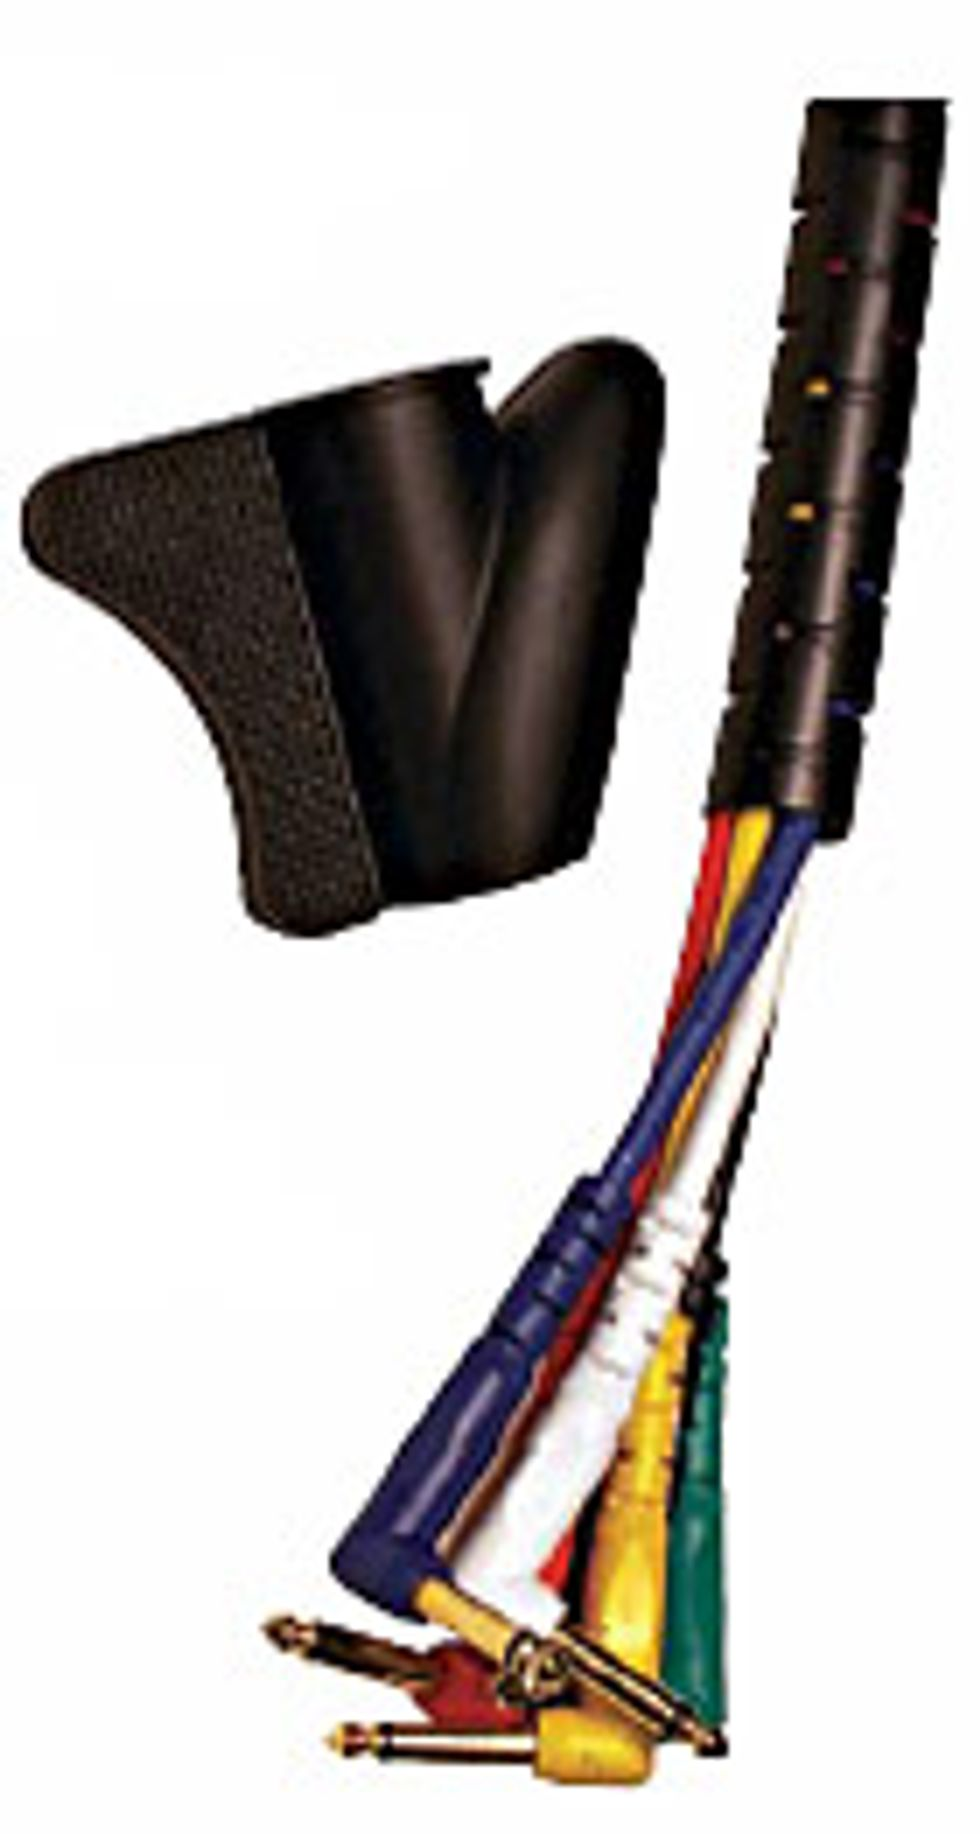 AudioSkin Cable Organizer